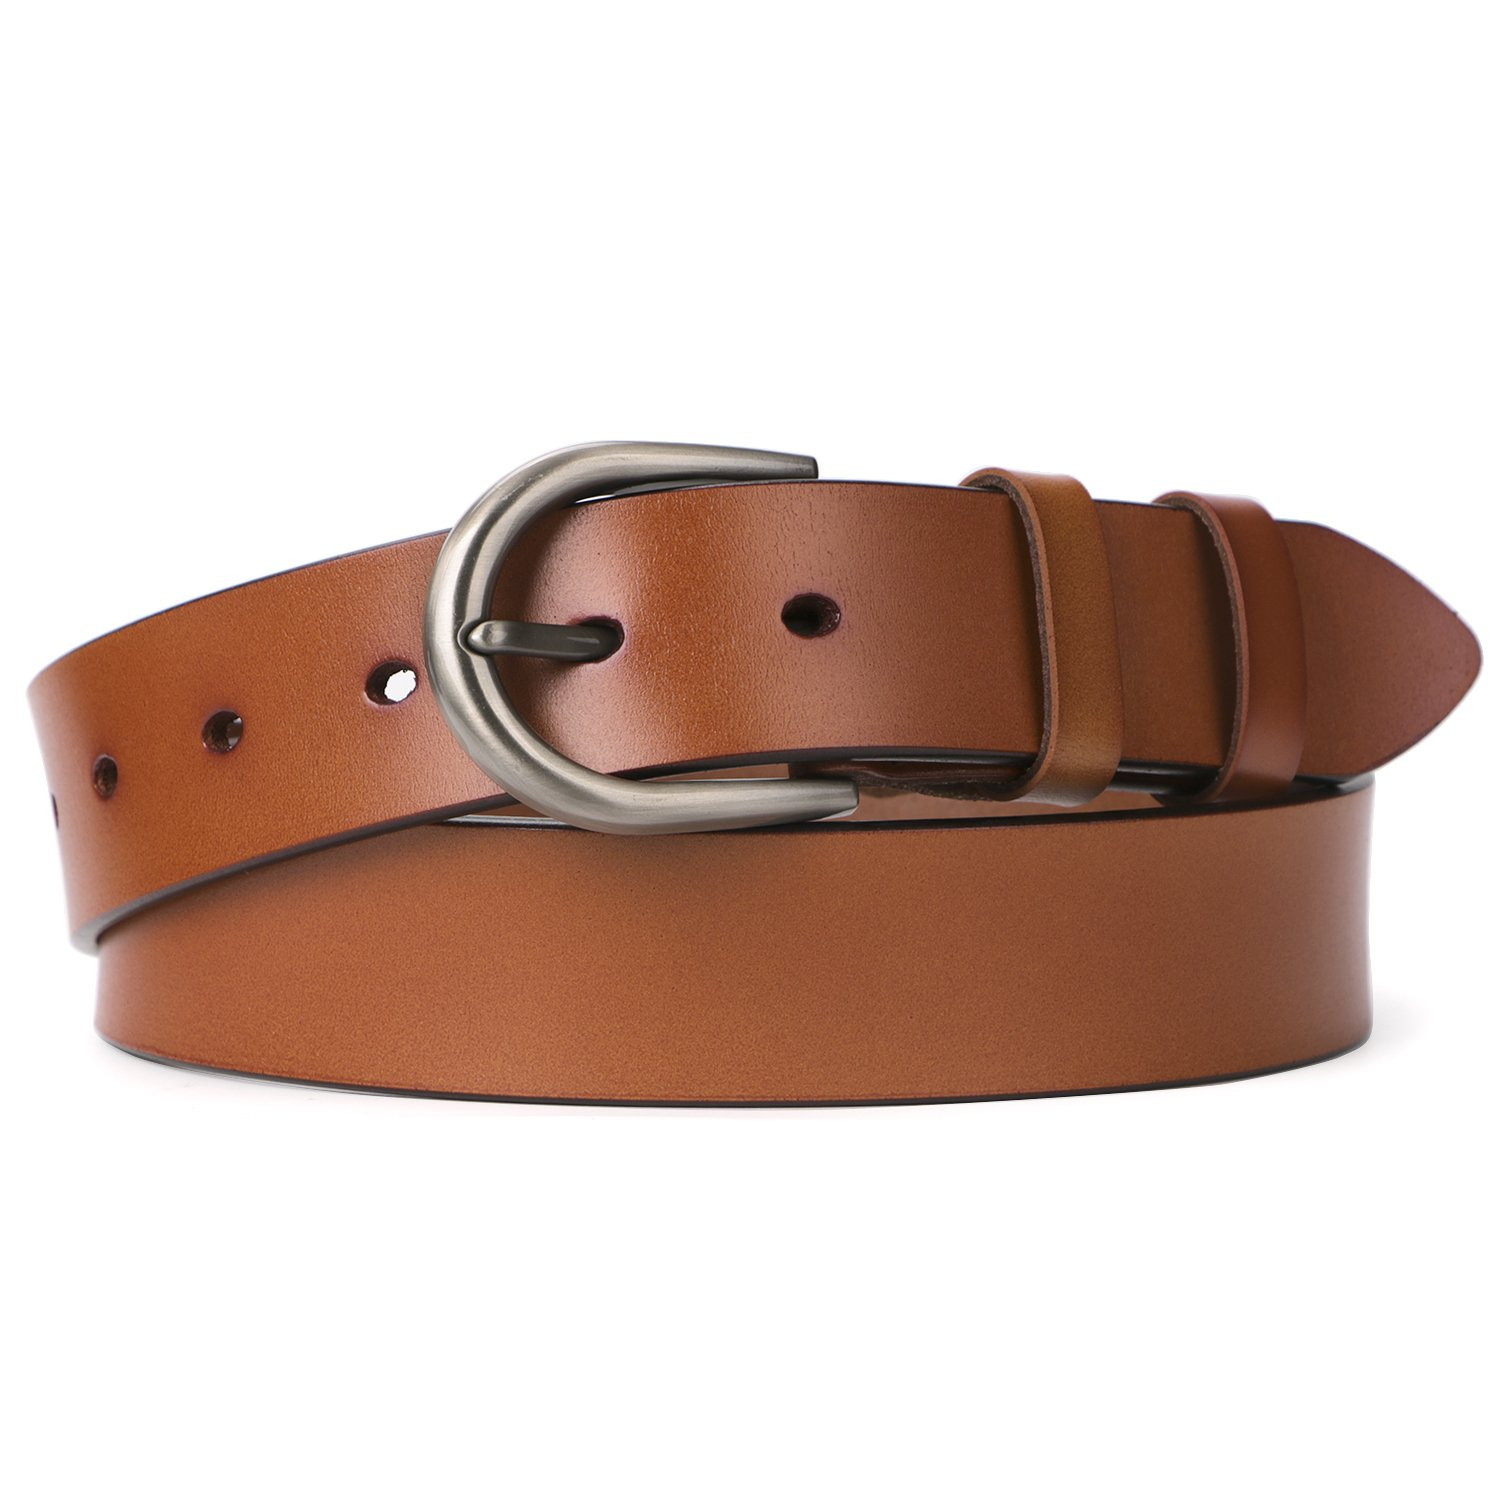 Designer Belts for Women,SUOSDEY Fashion Women Leather Belts